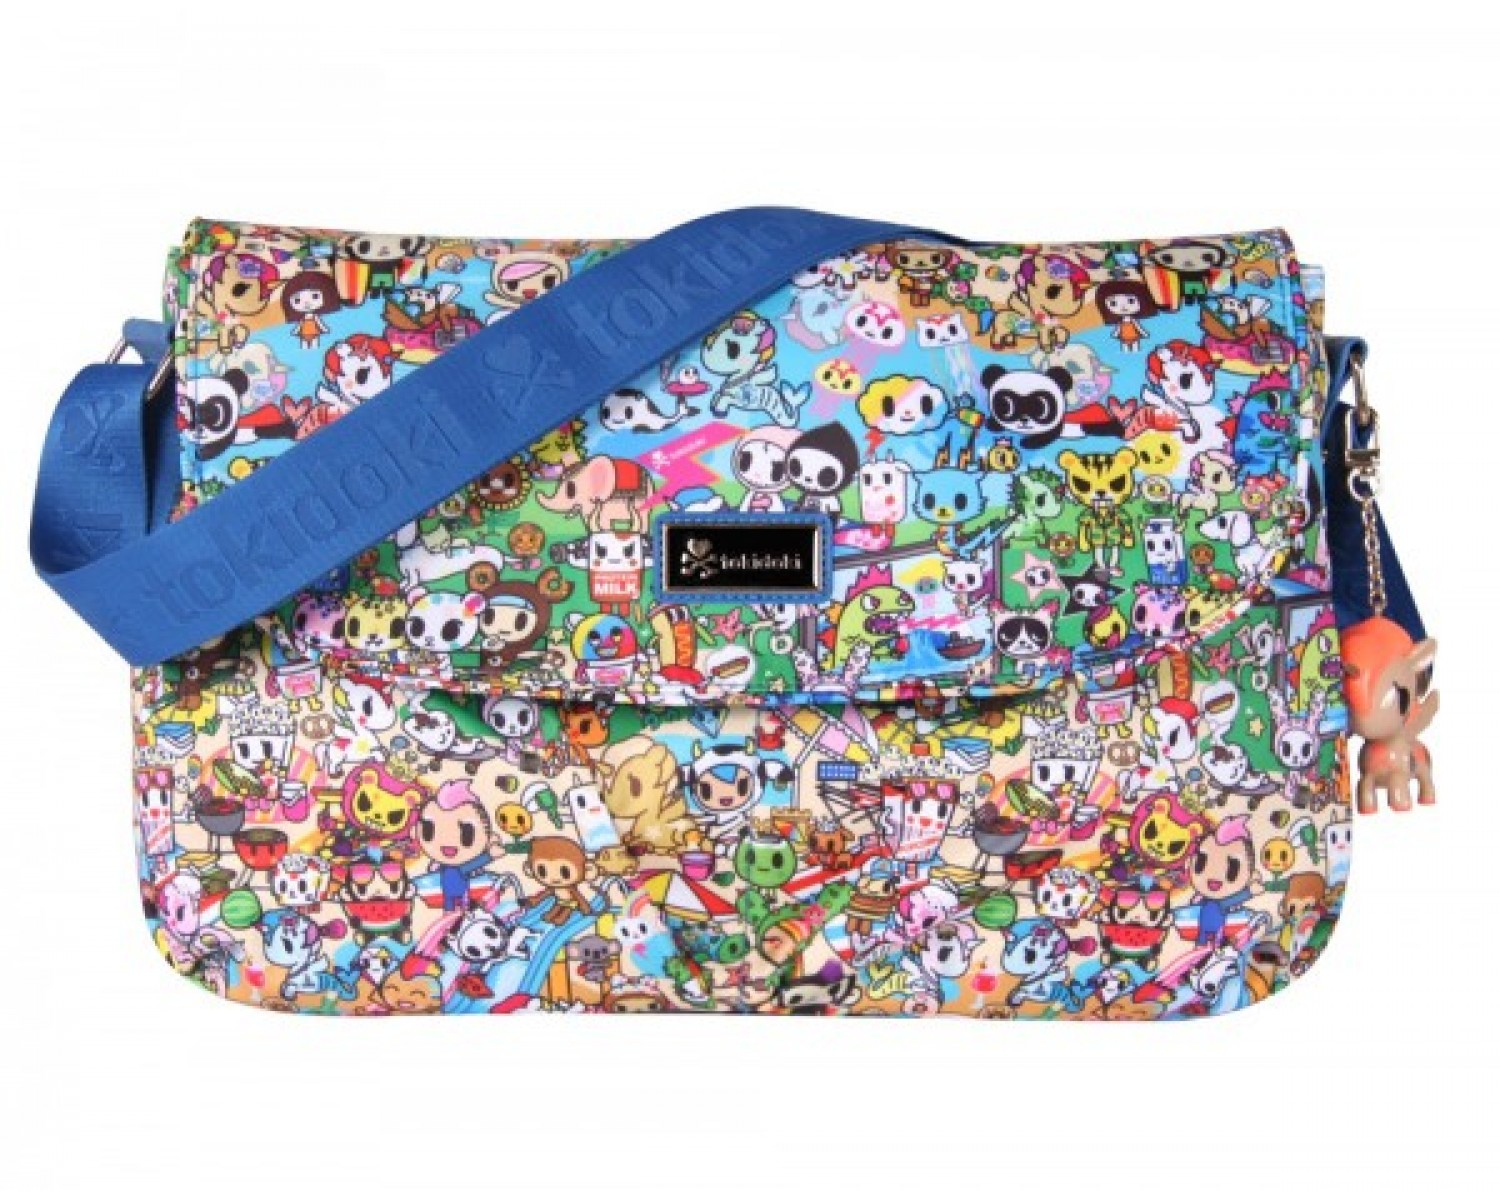 Beach Tokidoki Messenger Bag